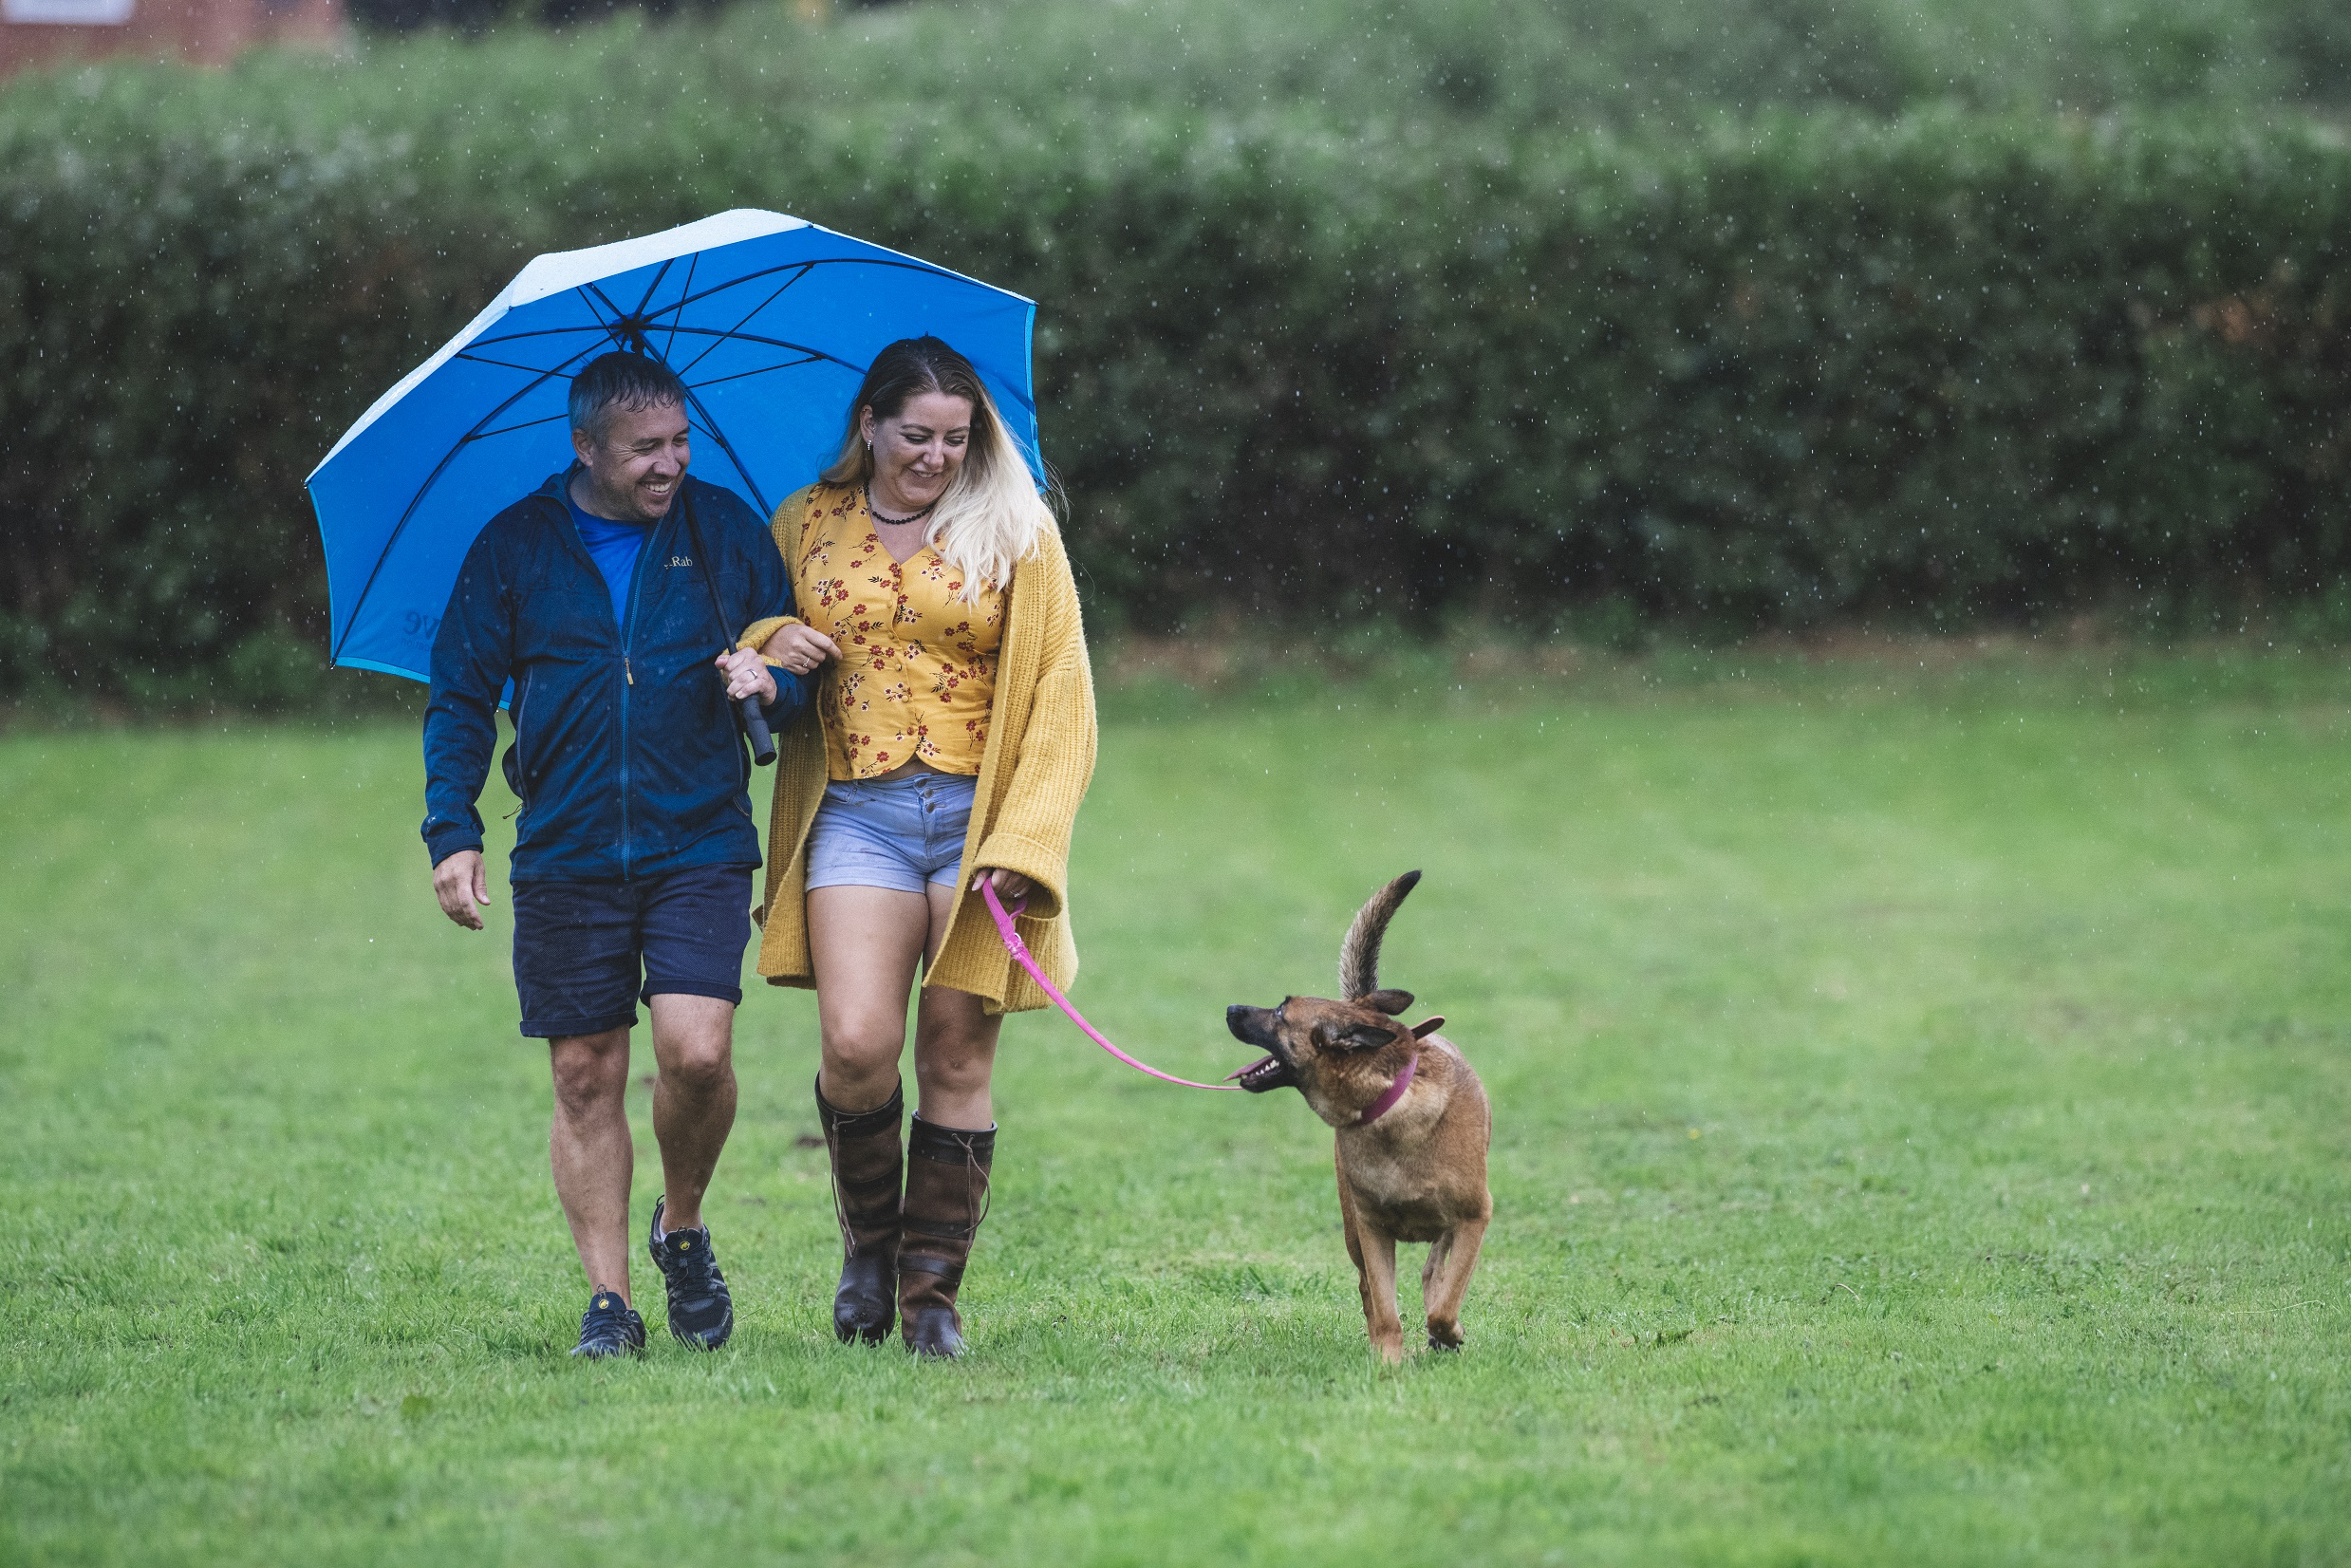 Faye and Richard Davies spent £20,000 on a field for their dog Lucy (Camelot/PA)